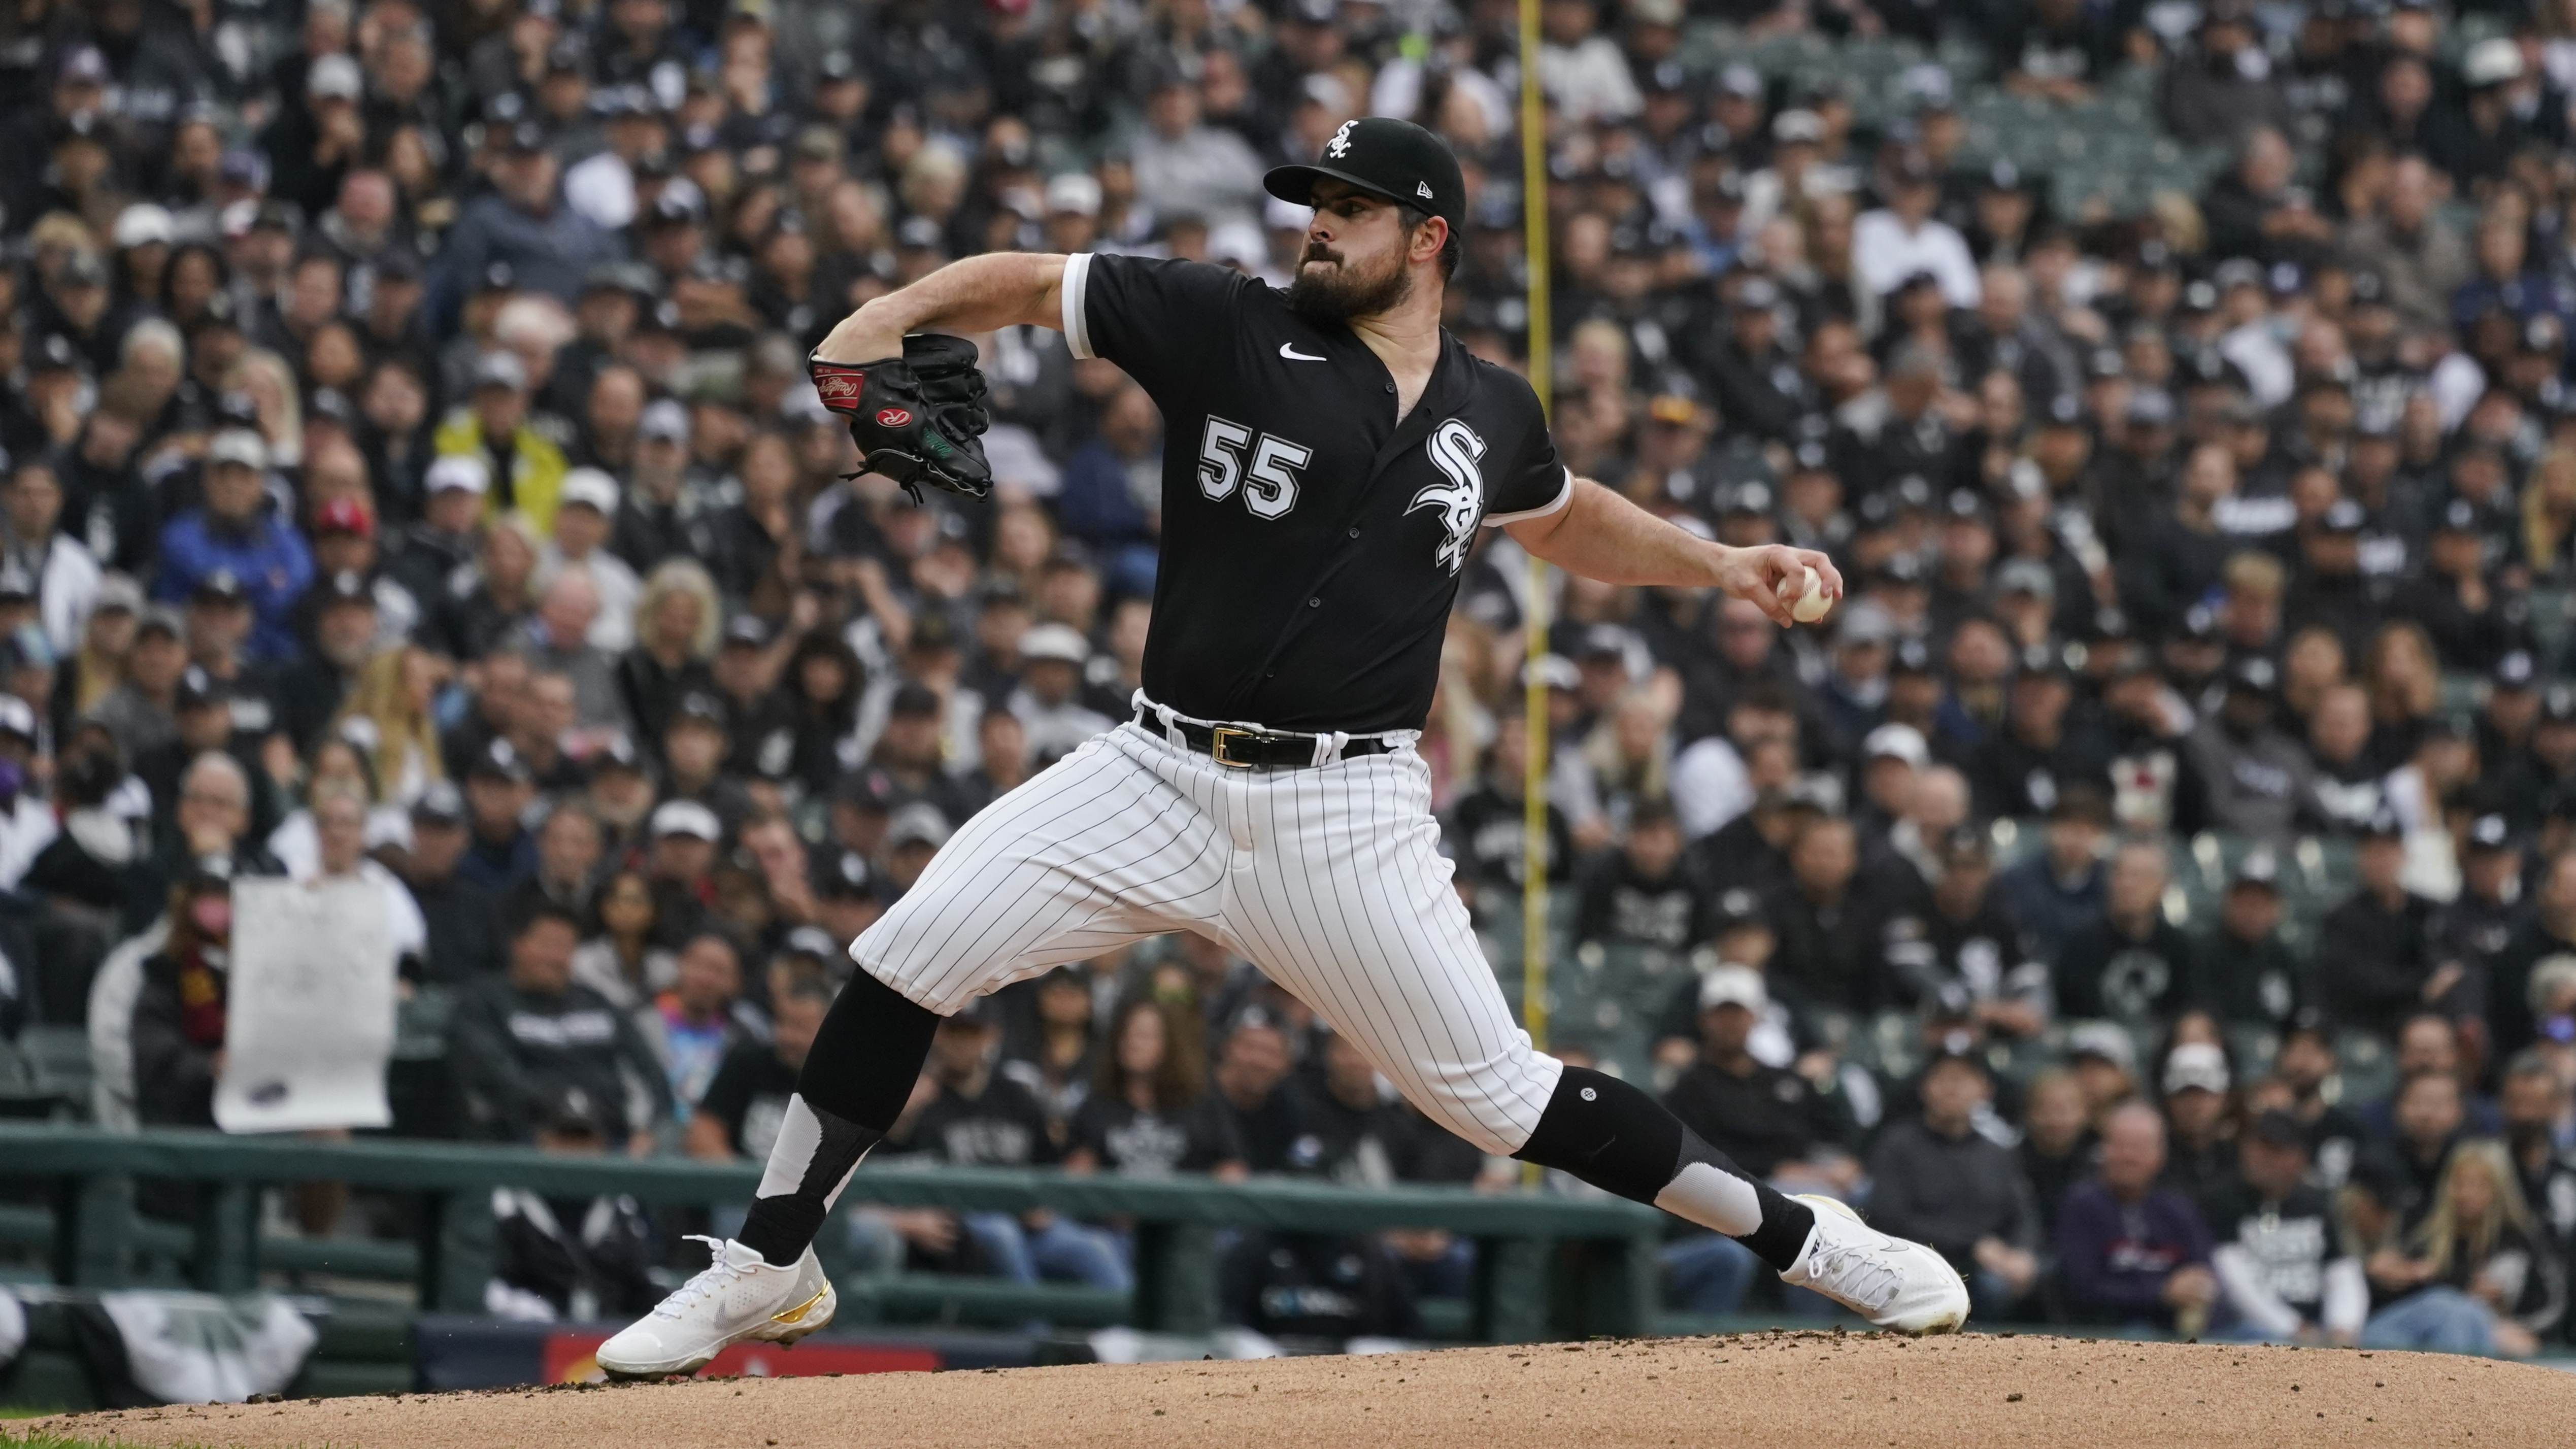 White Sox pitcher Carlos Rodon throws against the Houston Astros Tuesday in the first inning of ALDS Game 4 against the Astros.